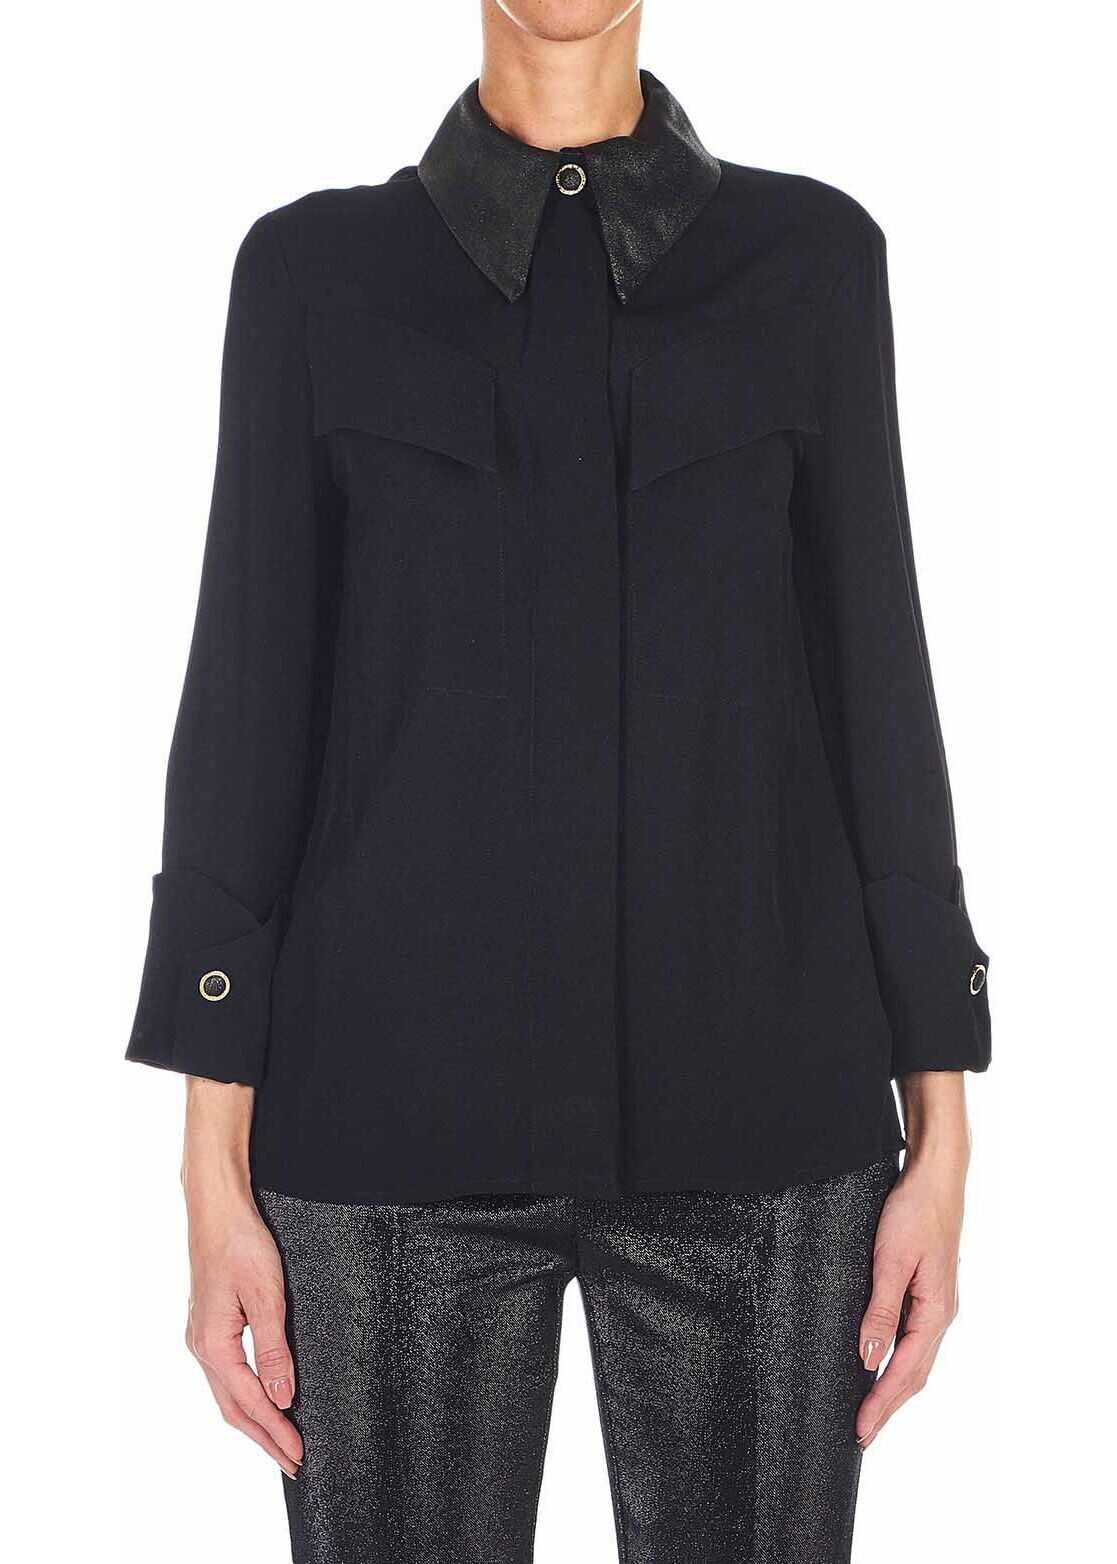 Elisabetta Franchi Blouse with glitter collar Black